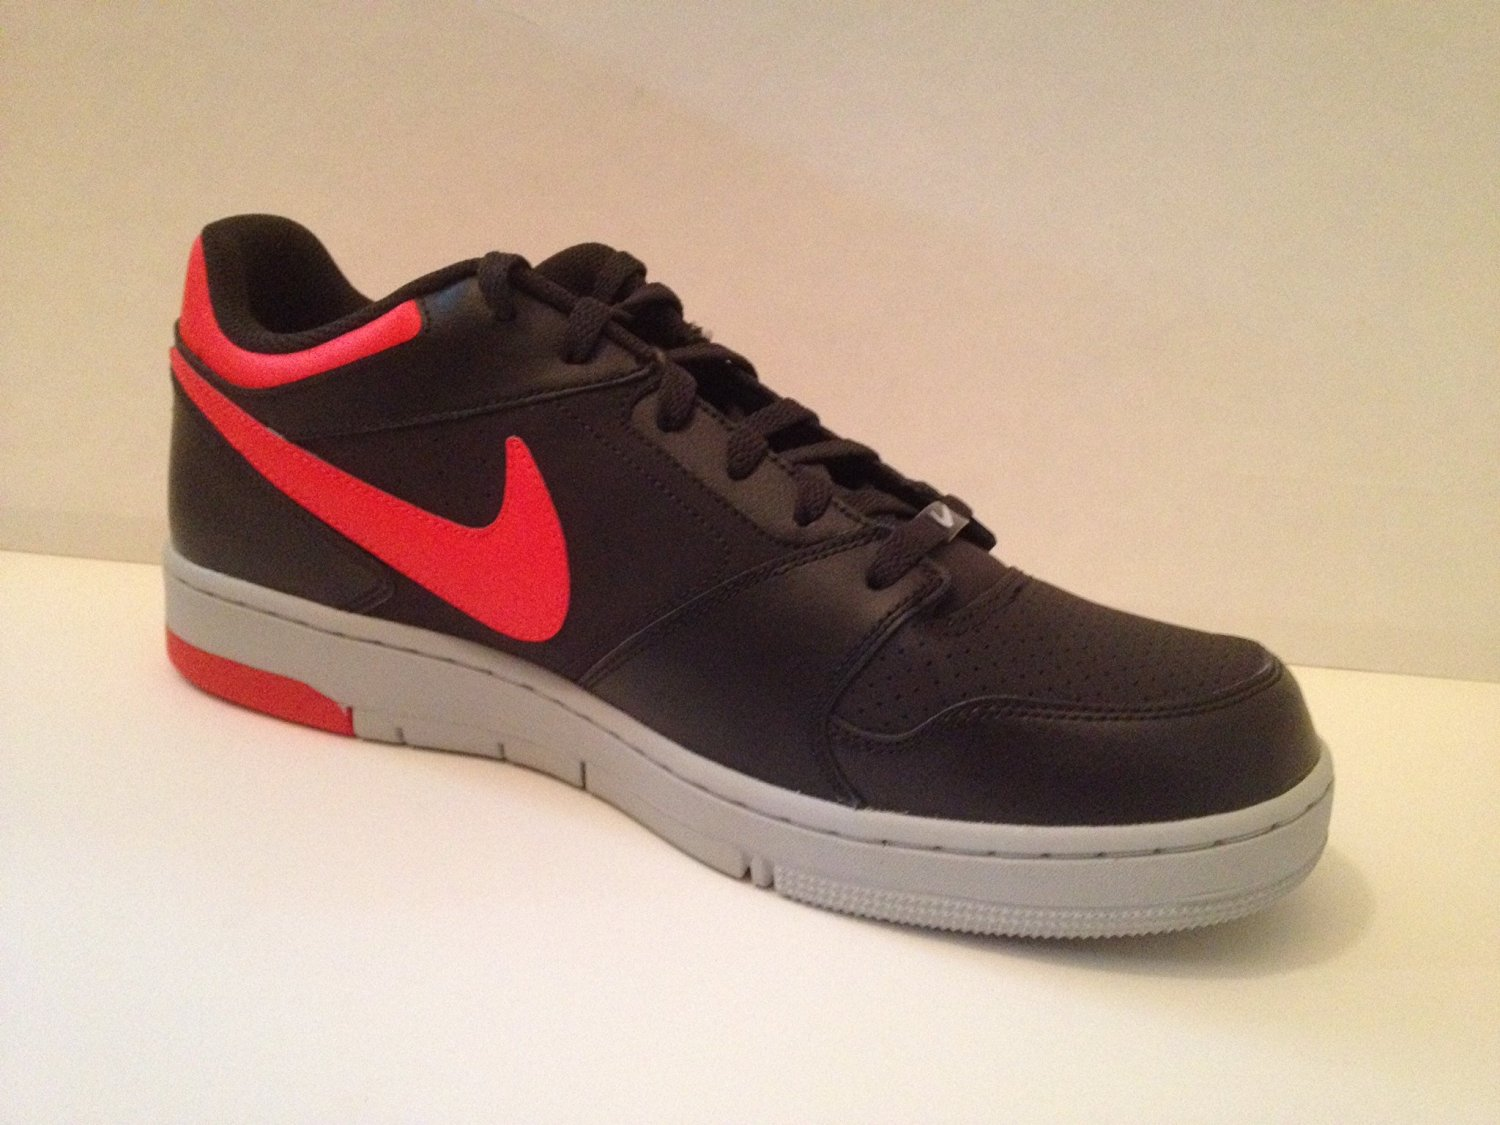 2014 Nike Air Prestige 4 Black/Anthracite Basketball Shoes! Size 13